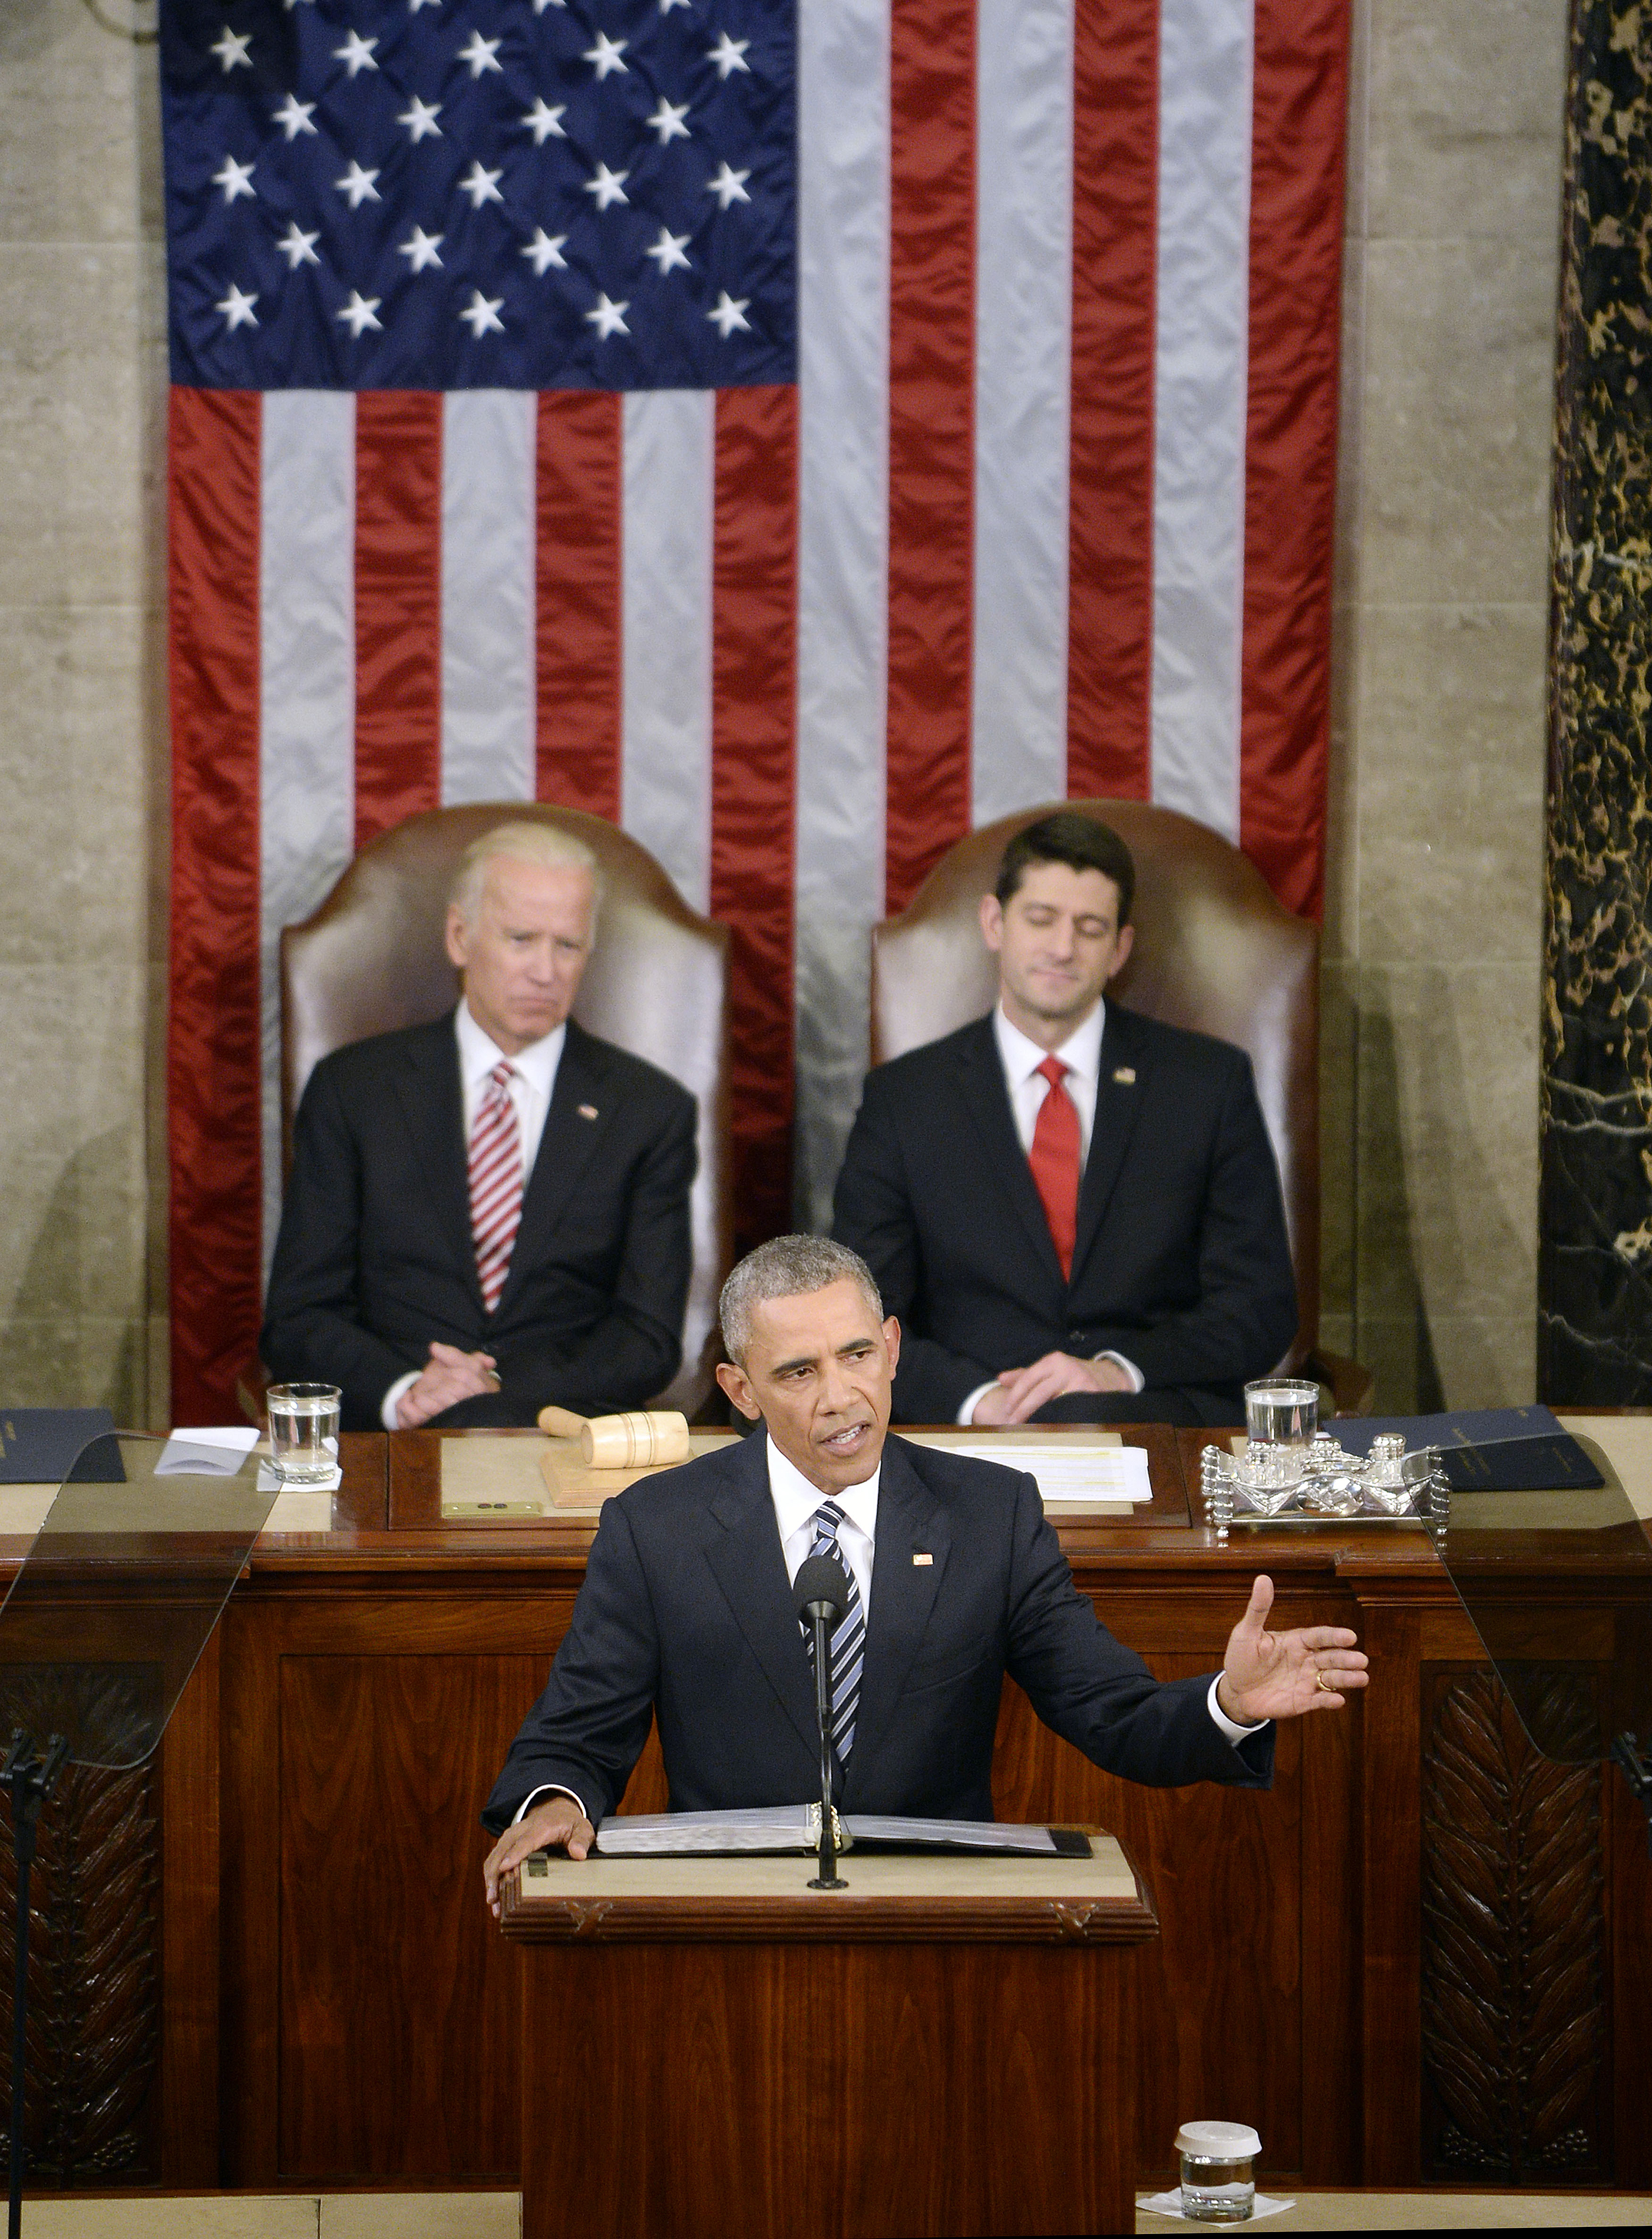 U.S. President Barack Obama delivers his final State of the Union address to a joint session of Congress at the Capitol in Washington, D.C., on Tuesday, Jan. 12, 2016. (Olivier Douliery/Abaca Press/TNS)